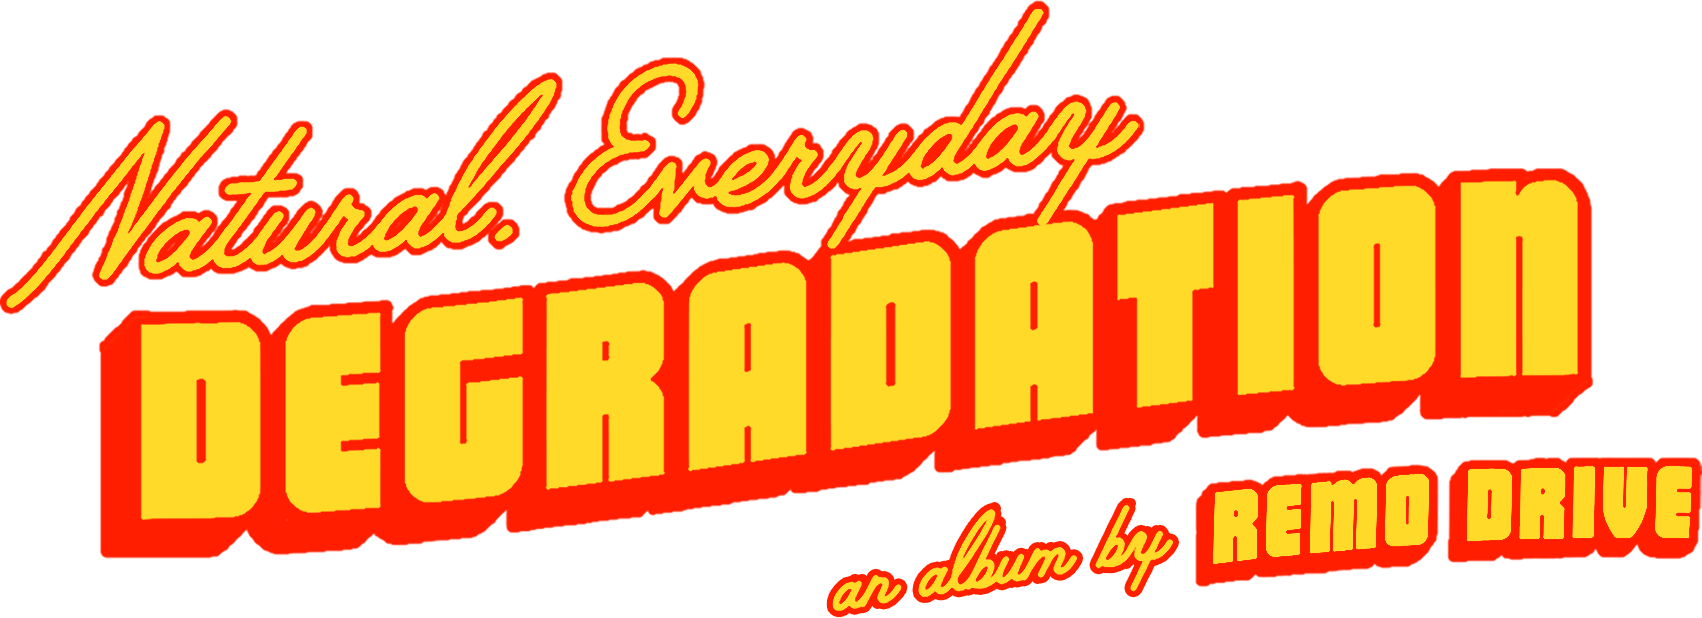 Natural Everday Degredation, an album by Remo Drive